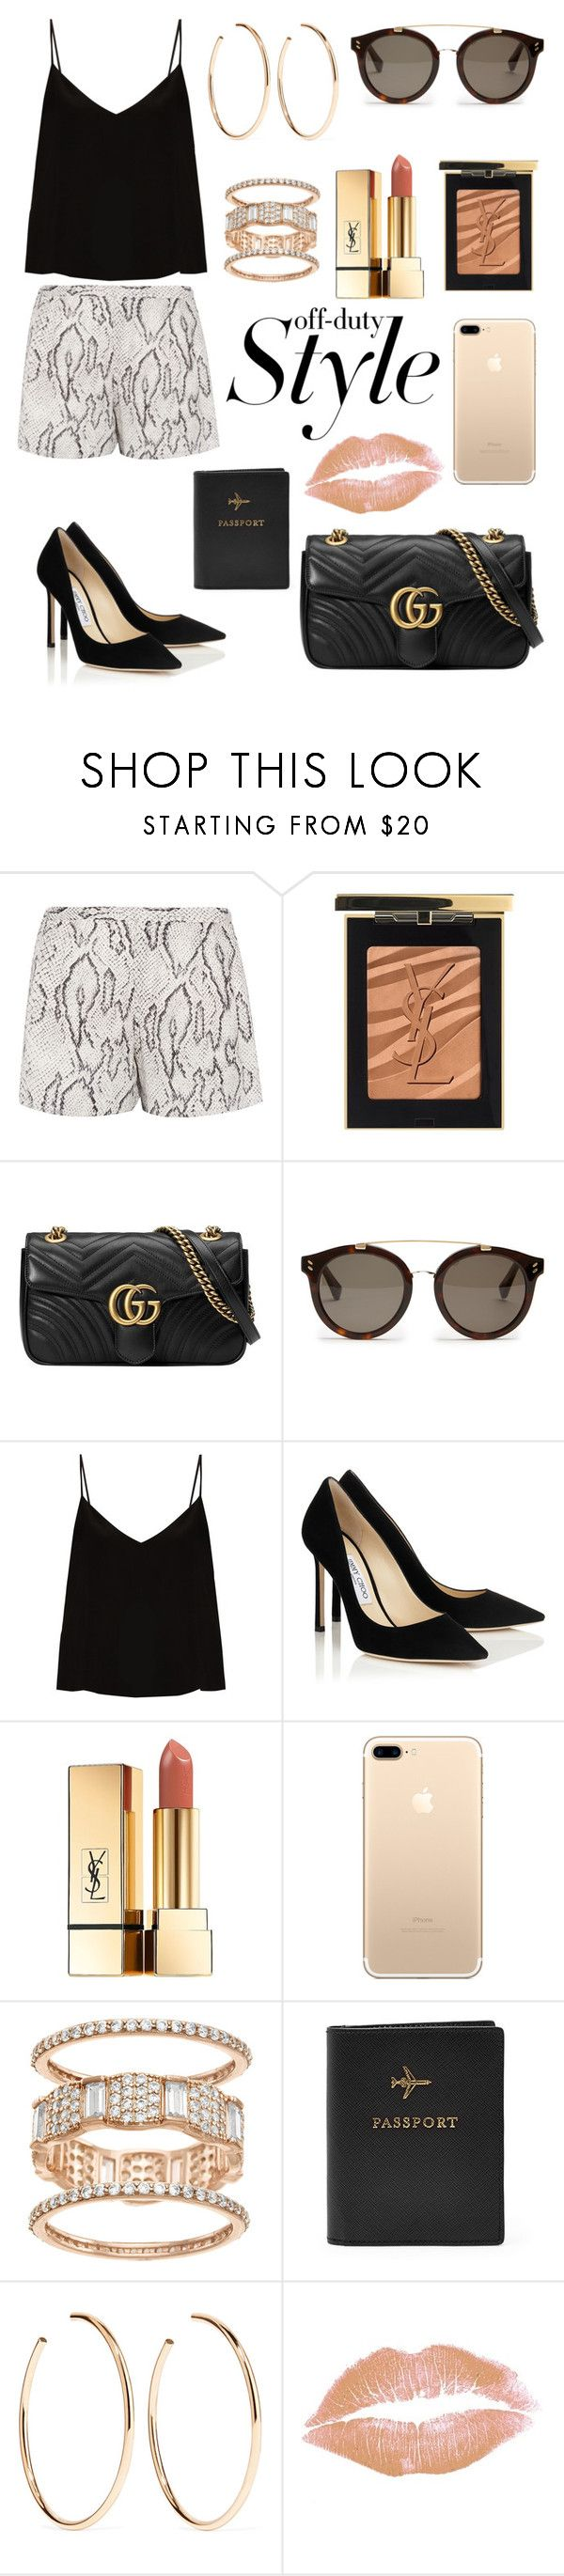 """""""off-duty Style ✈️"""" by stylebyceylin ❤ liked on Polyvore featuring Haute Hippie, Yves Saint Laurent, Gucci, STELLA McCARTNEY, Raey, FOSSIL and Jennifer Fisher"""